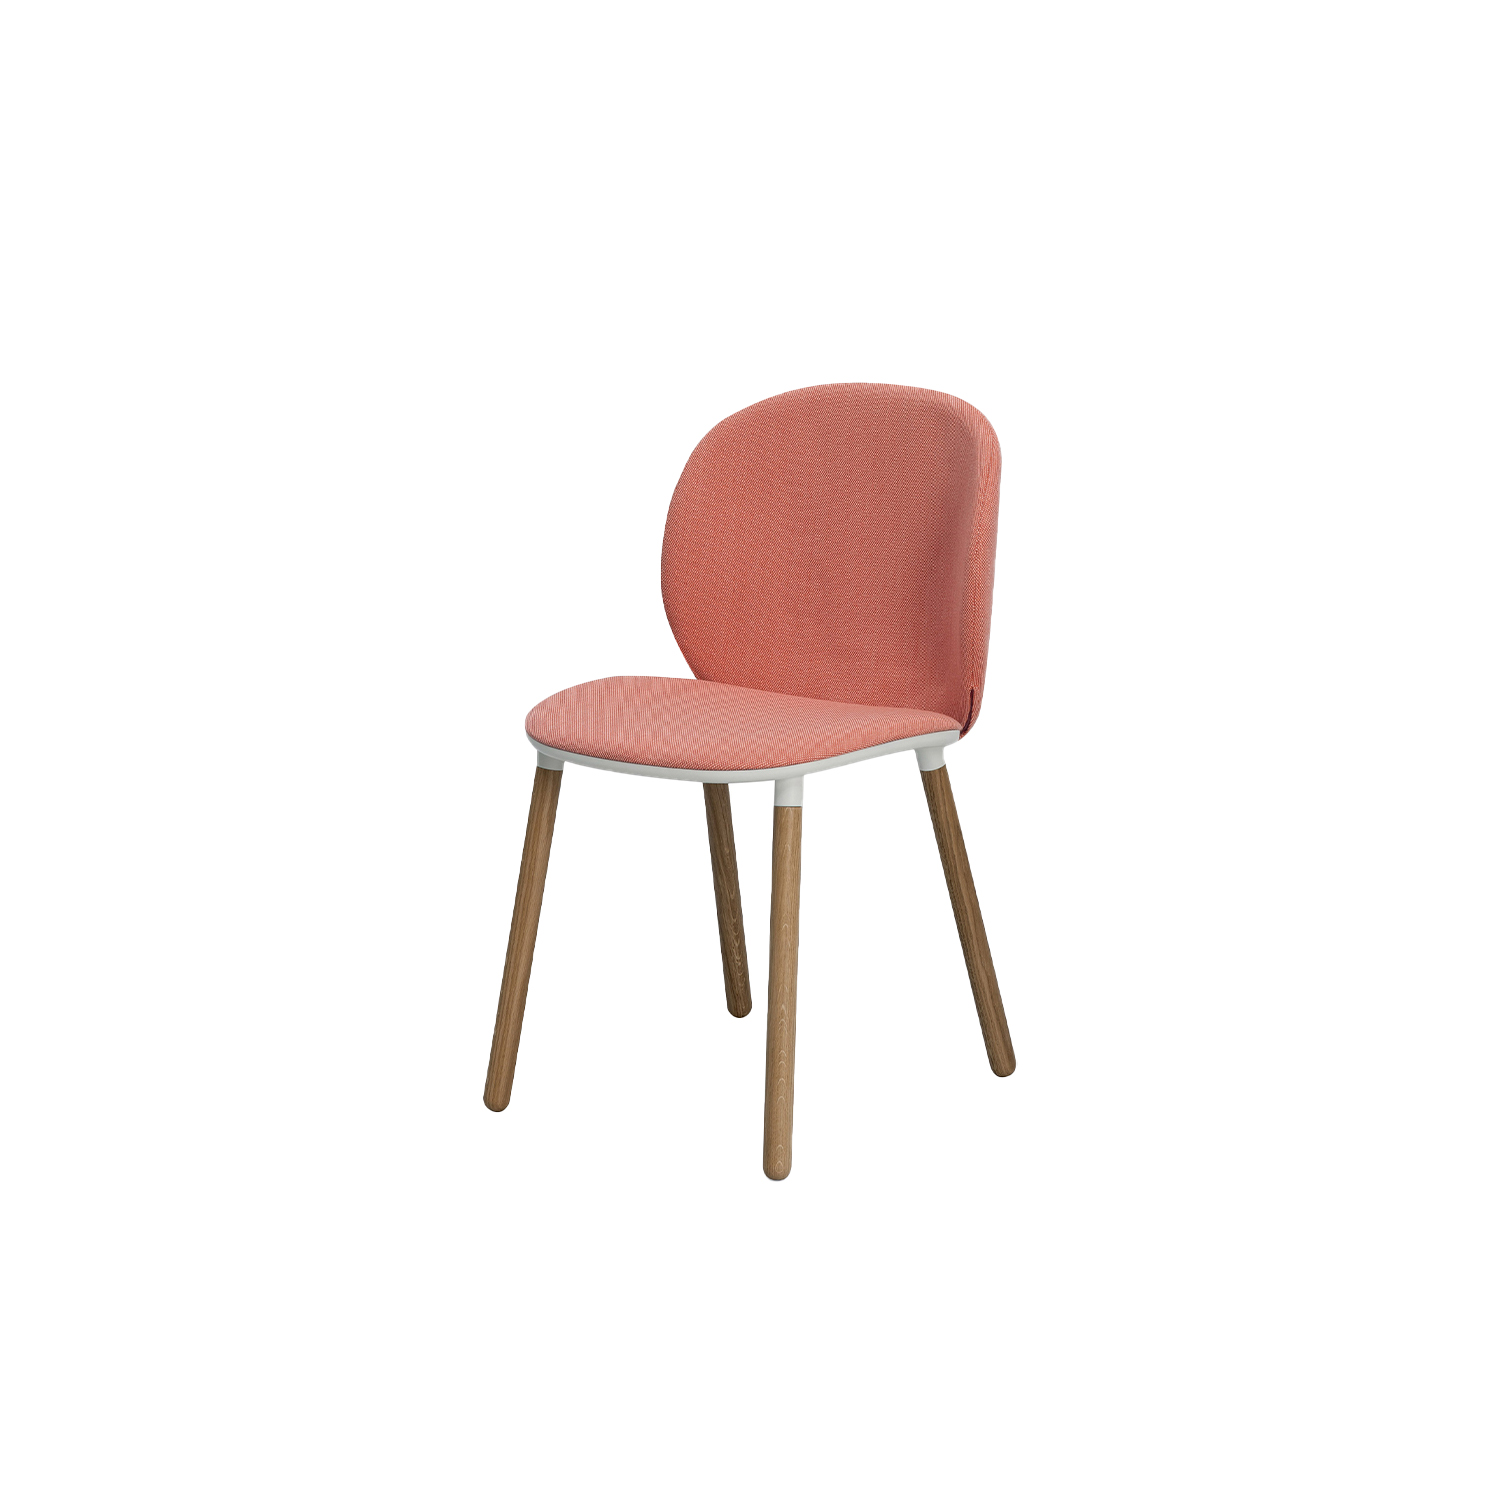 Dua Chair with Wooden Base - The Berlin-based studio Läufer & Keichel has created a chair and an armchair for Kristalia with soft, embracing lines. The name recalls the number two, which recurs throughout the design project starting with the two elliptical surfaces of the seat and backrest, which sensually revolves around the seat. Available with a slide-frame base or with four solid wood legs, the chair and armchair can be upholstered with the fabrics and leather in the catalogue, with the option of different upholstery for the seat and backrest to create contrasting or matching combinations. | Matter of Stuff